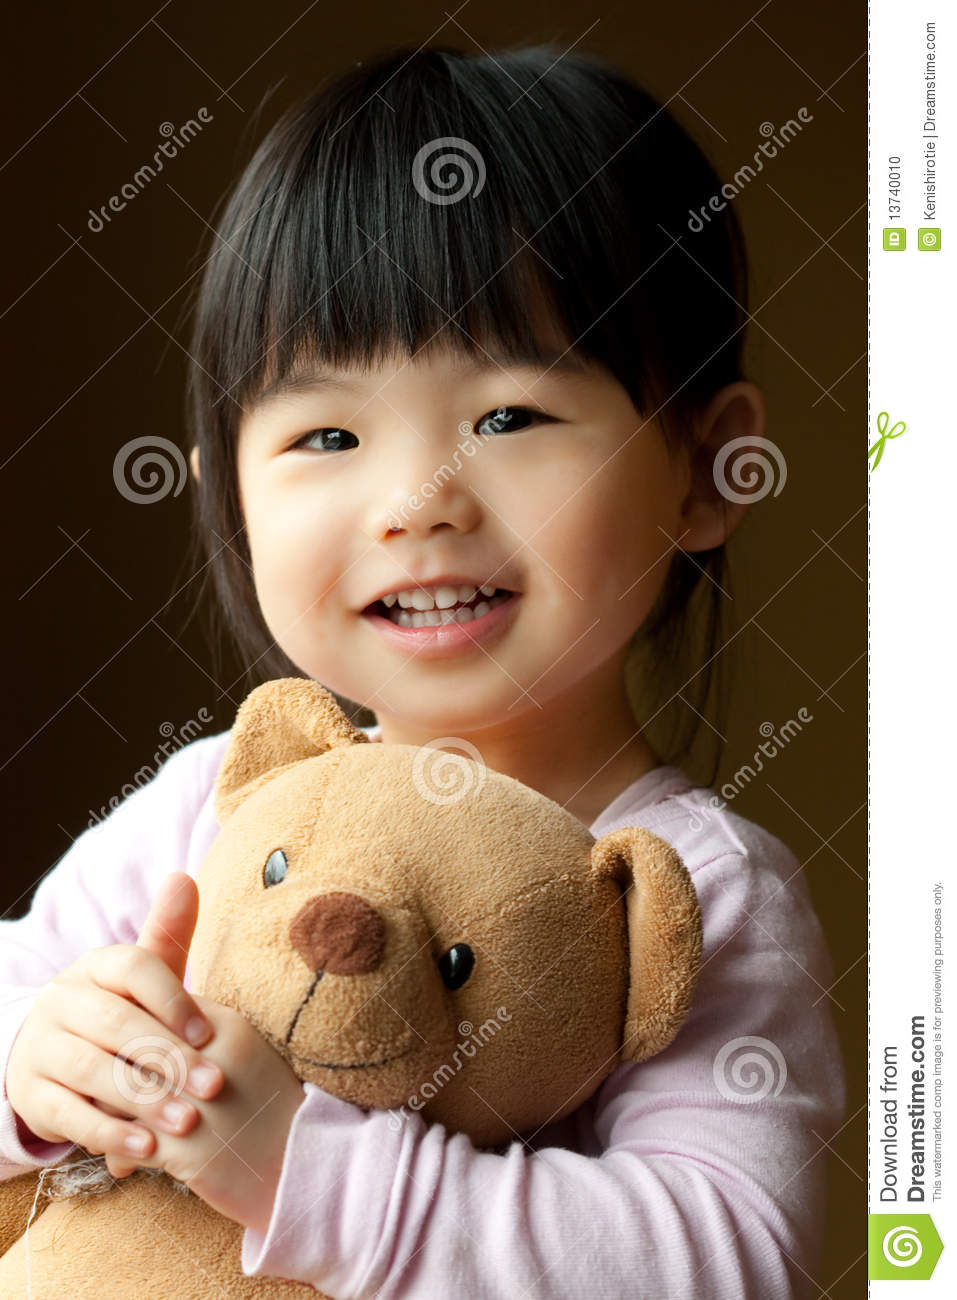 petit enfant de sourire avec un ours de nounours photo stock image 13740010. Black Bedroom Furniture Sets. Home Design Ideas